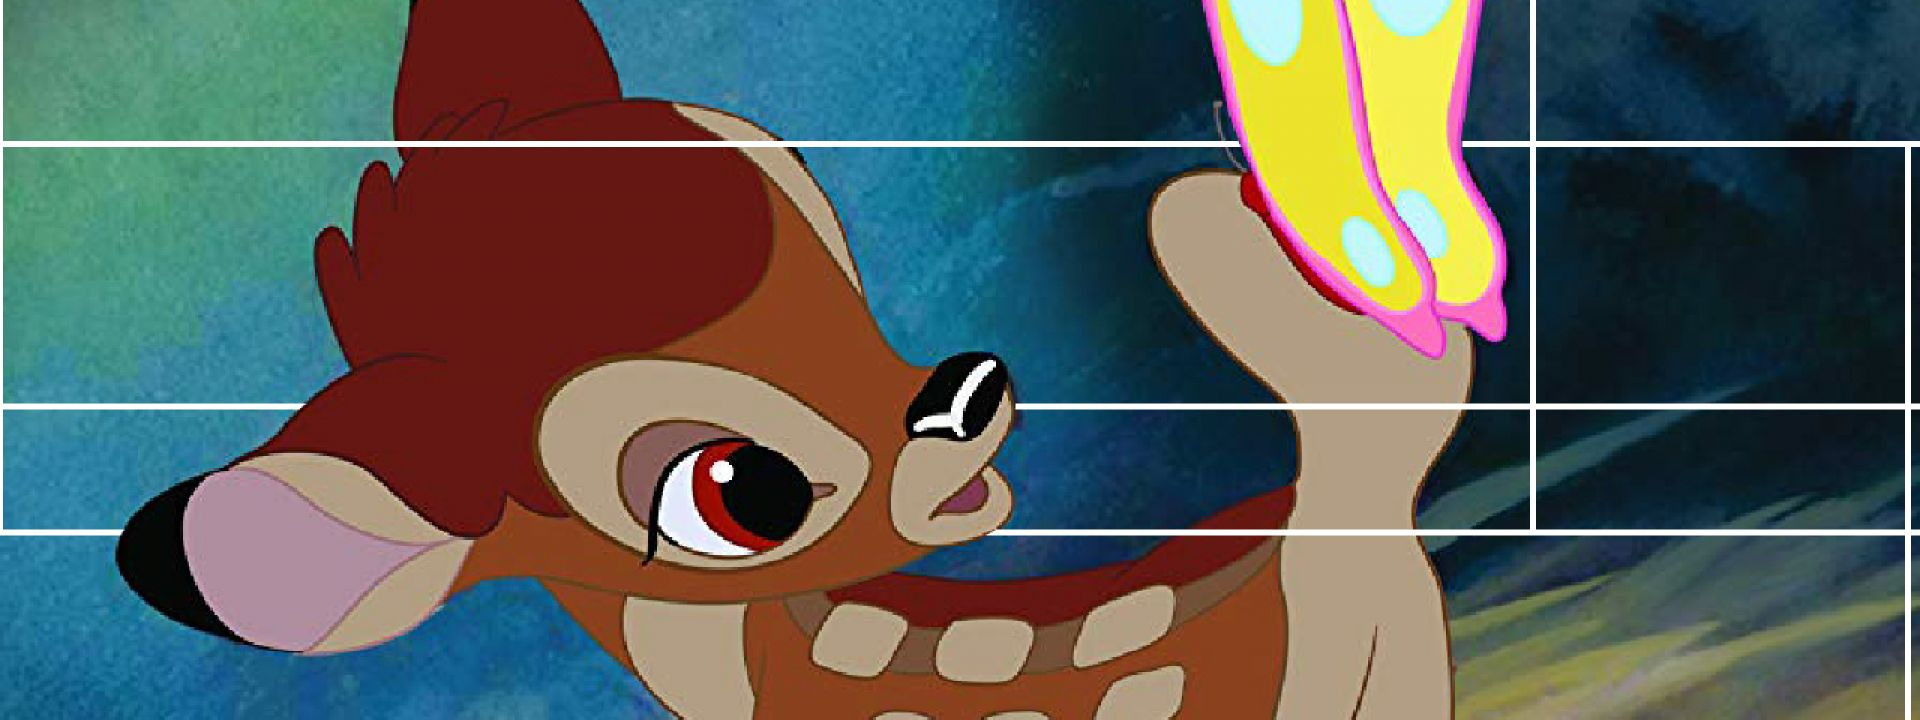 "Secne from the movie: "" Bambi """